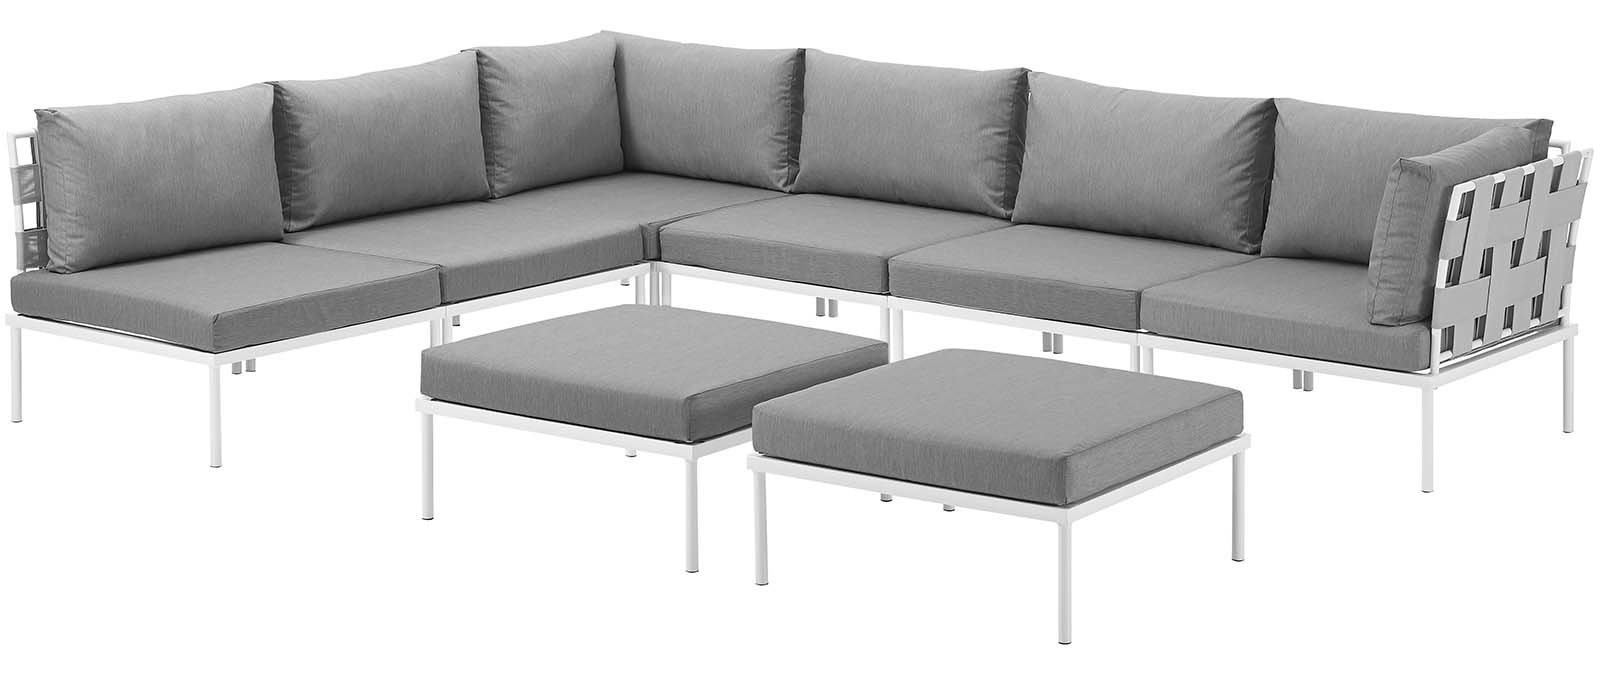 Paloma Sectionals With Cushions Throughout Favorite Darnell Outdoor Patio Sectional With Cushions (View 16 of 20)